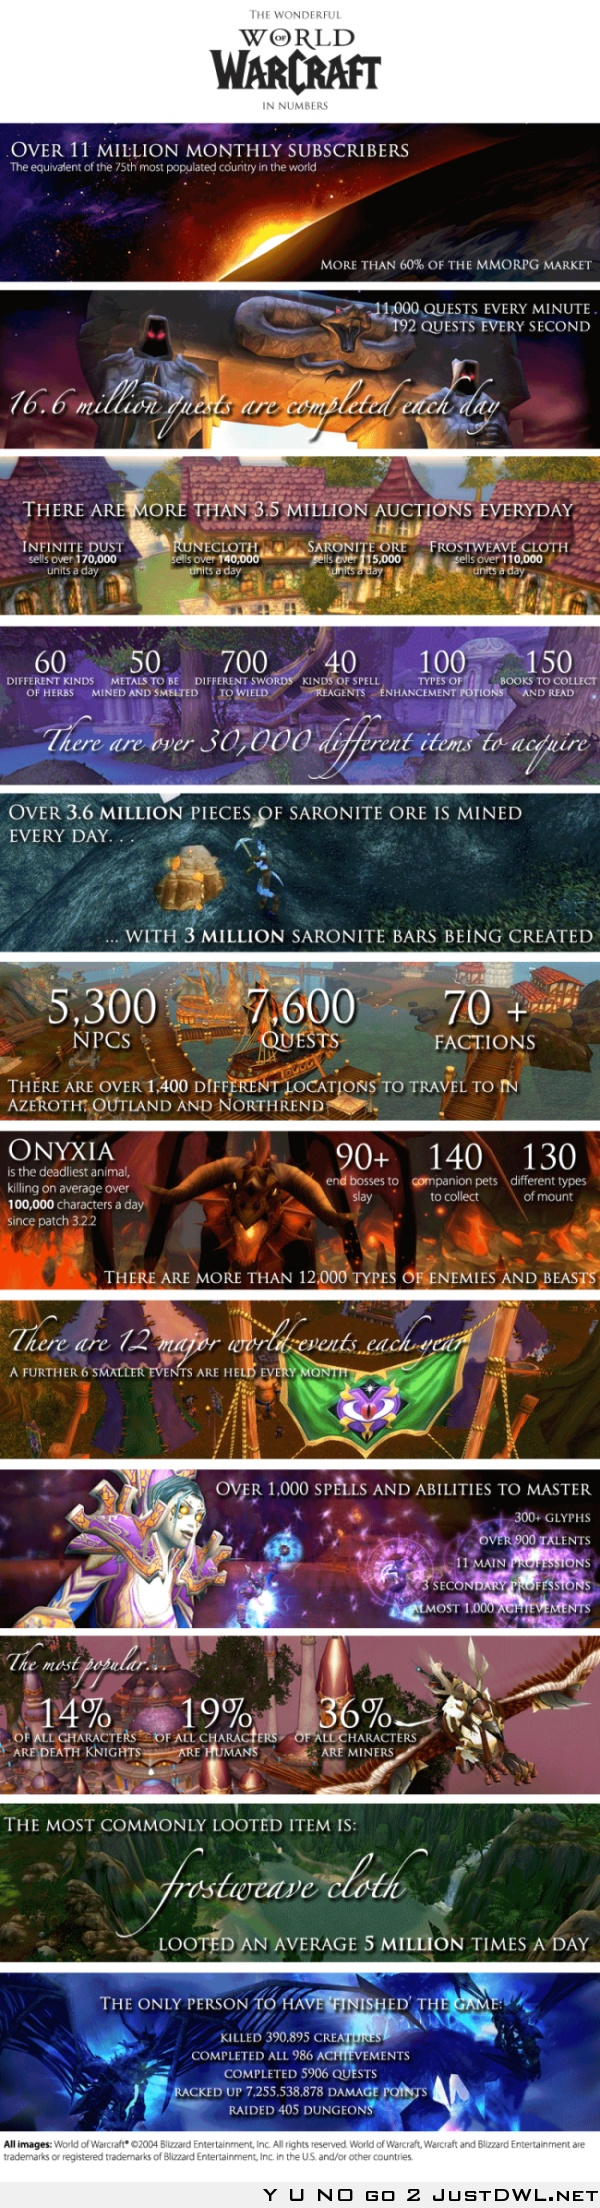 World of Warcraft – In Numbers (for boyfriend lol)